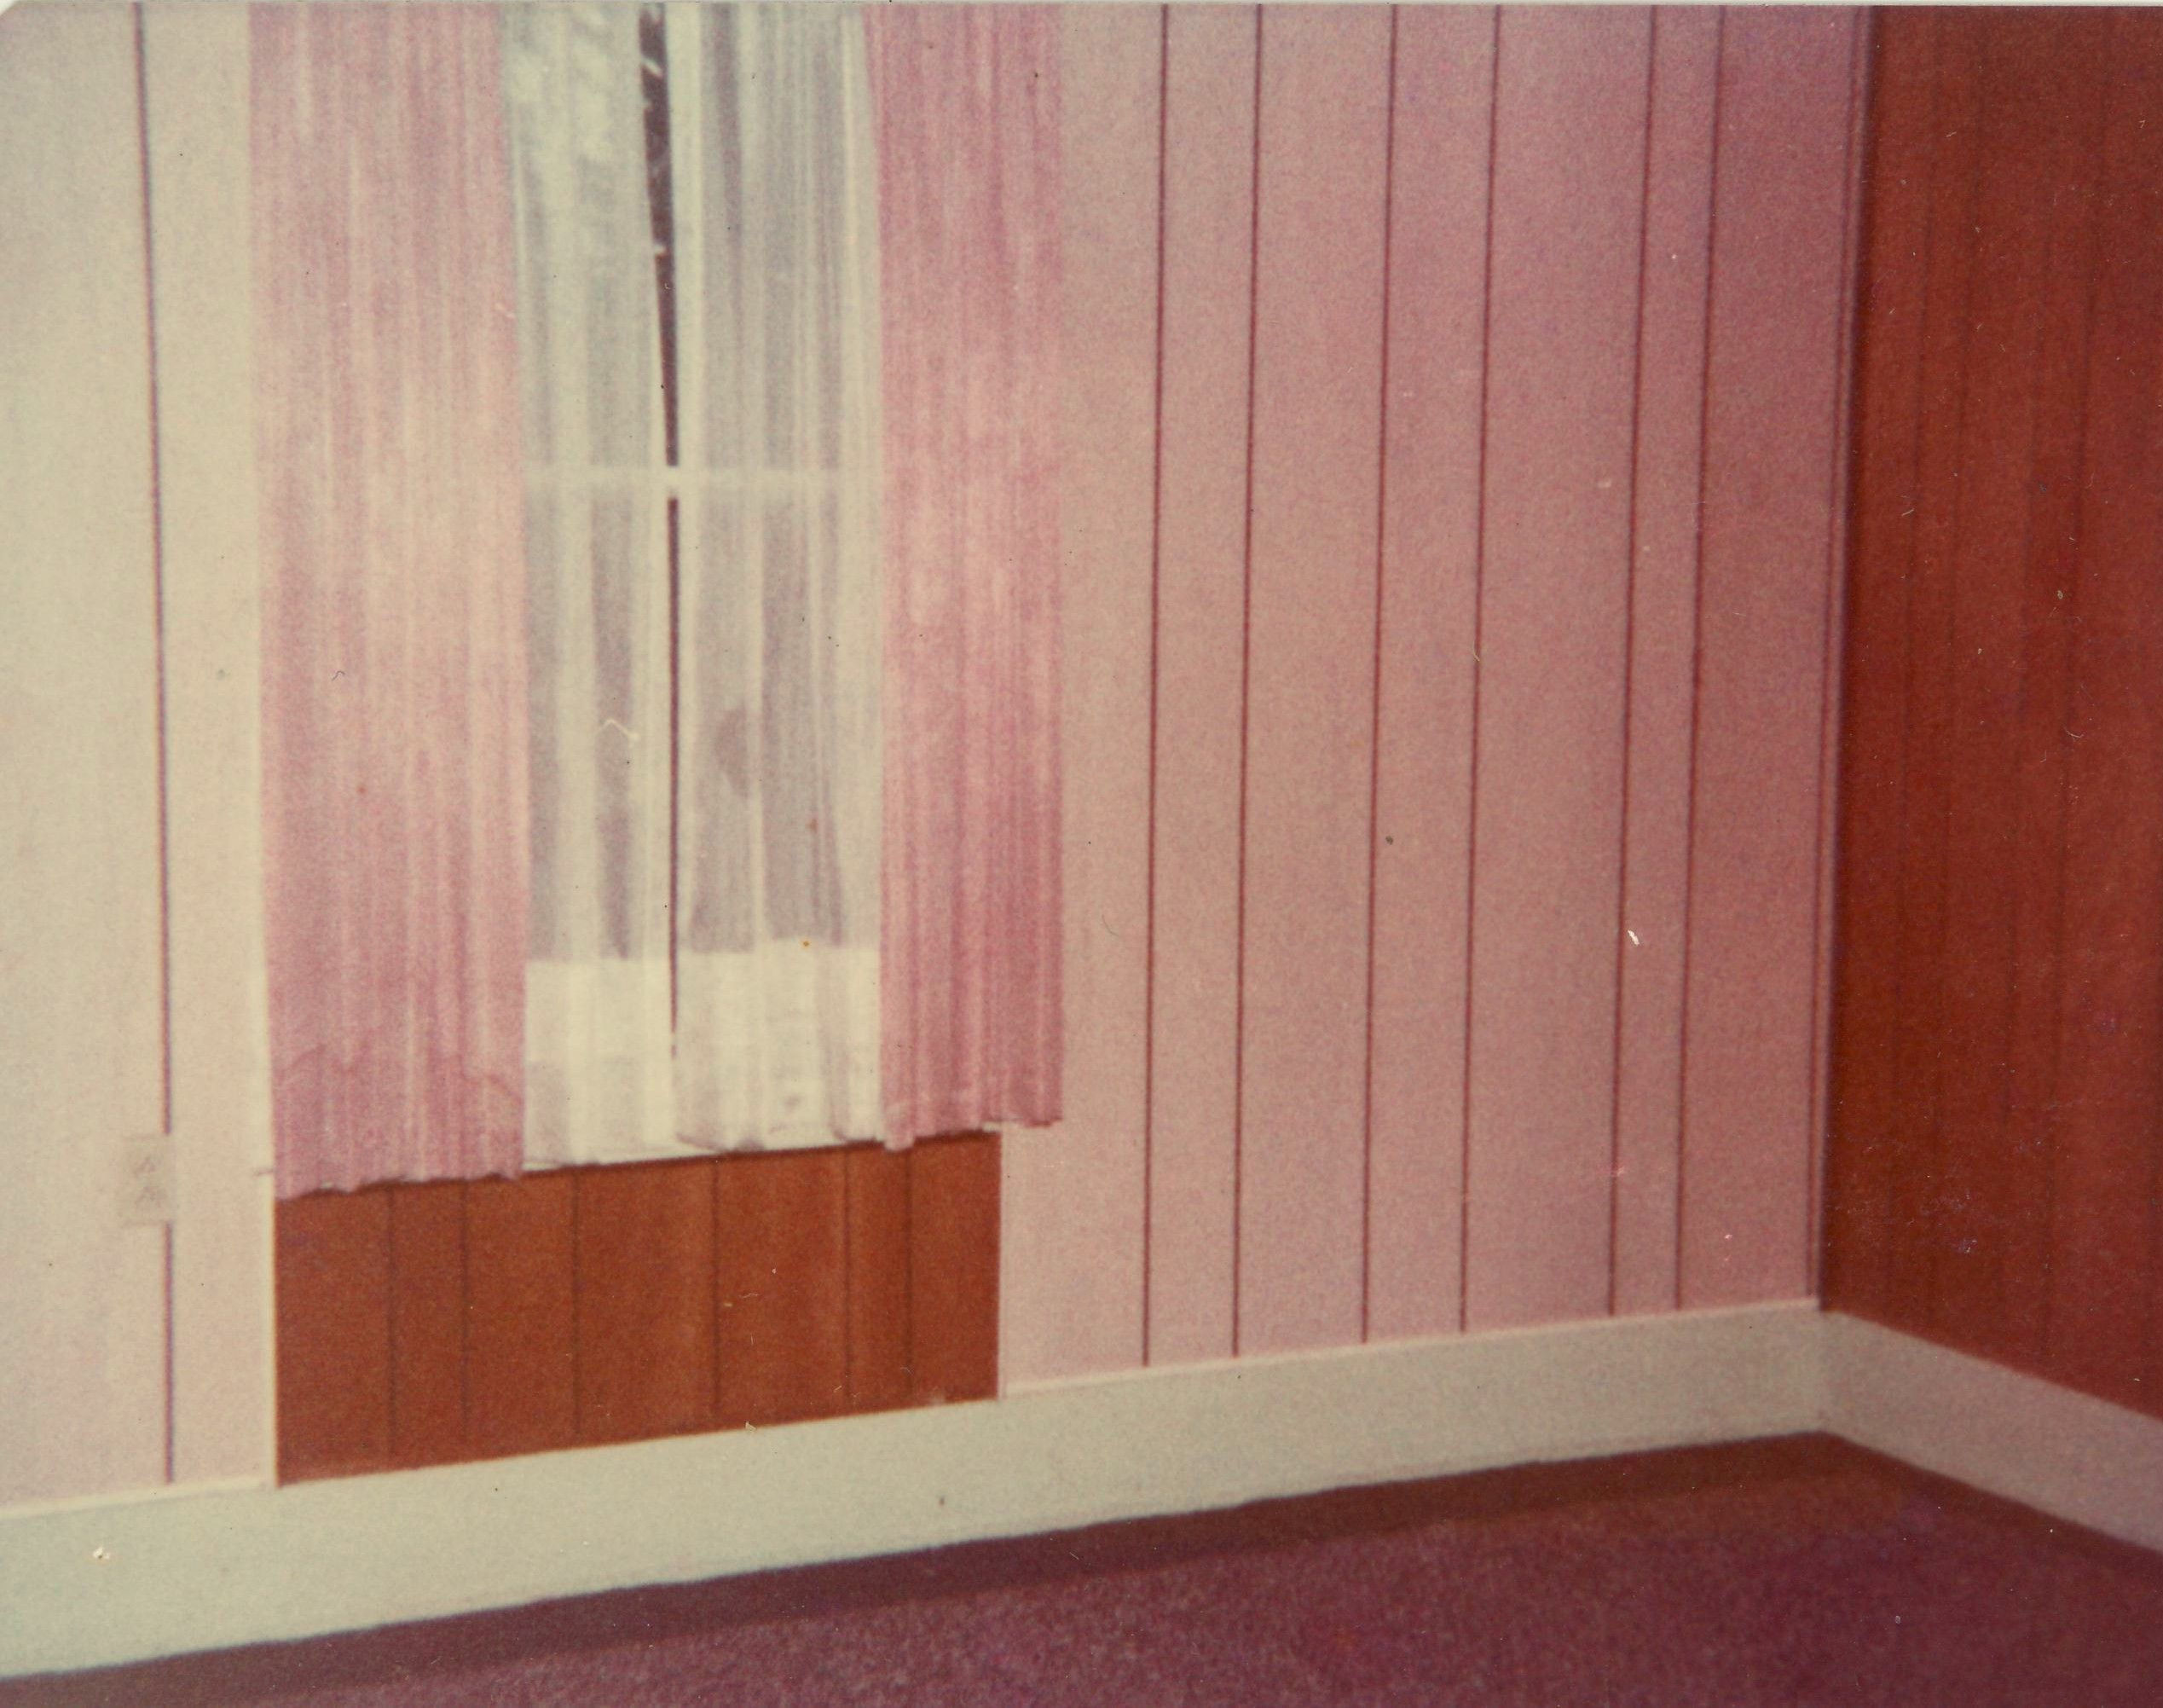 One of our children, Donna, picked this room. It had stripes of brown and grey panelling around the room. She redecorated it with paint and wallpaper and later, after she was an adult, came and took the walls down to the studs so we could turn it into a guest room for our granddaughters.